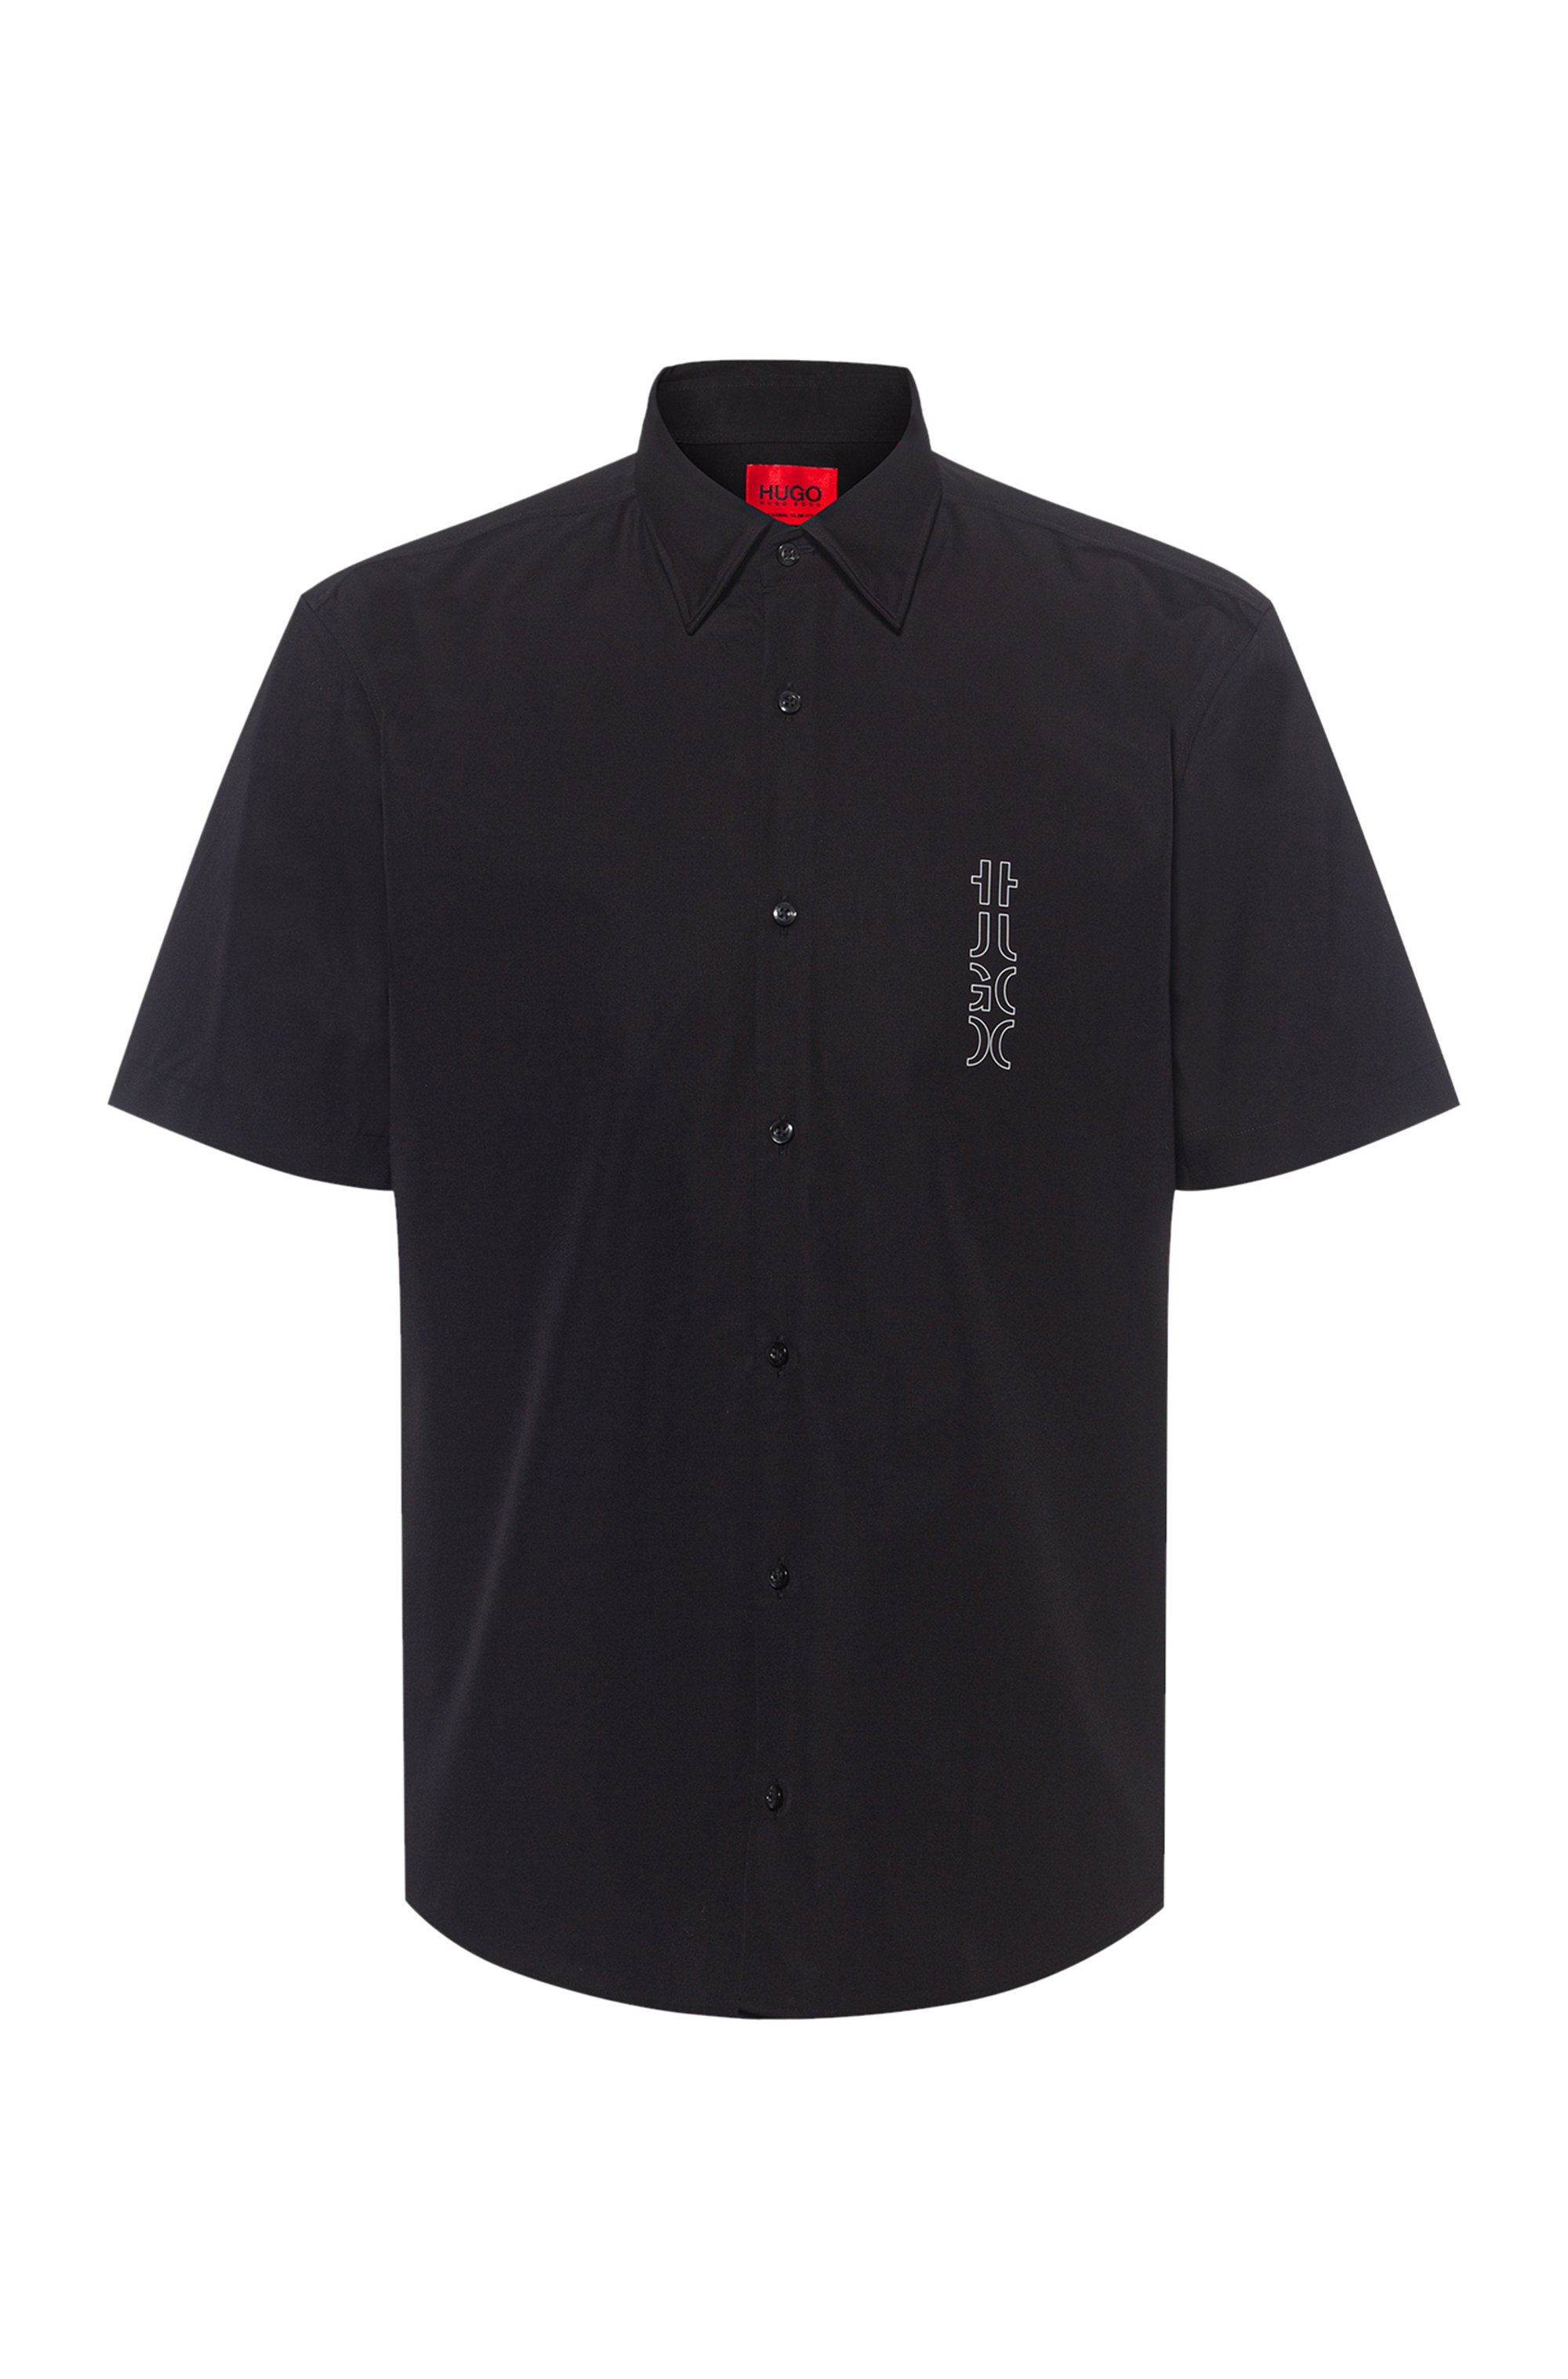 Cotton-poplin slim-fit shirt with mirrored logo, Black